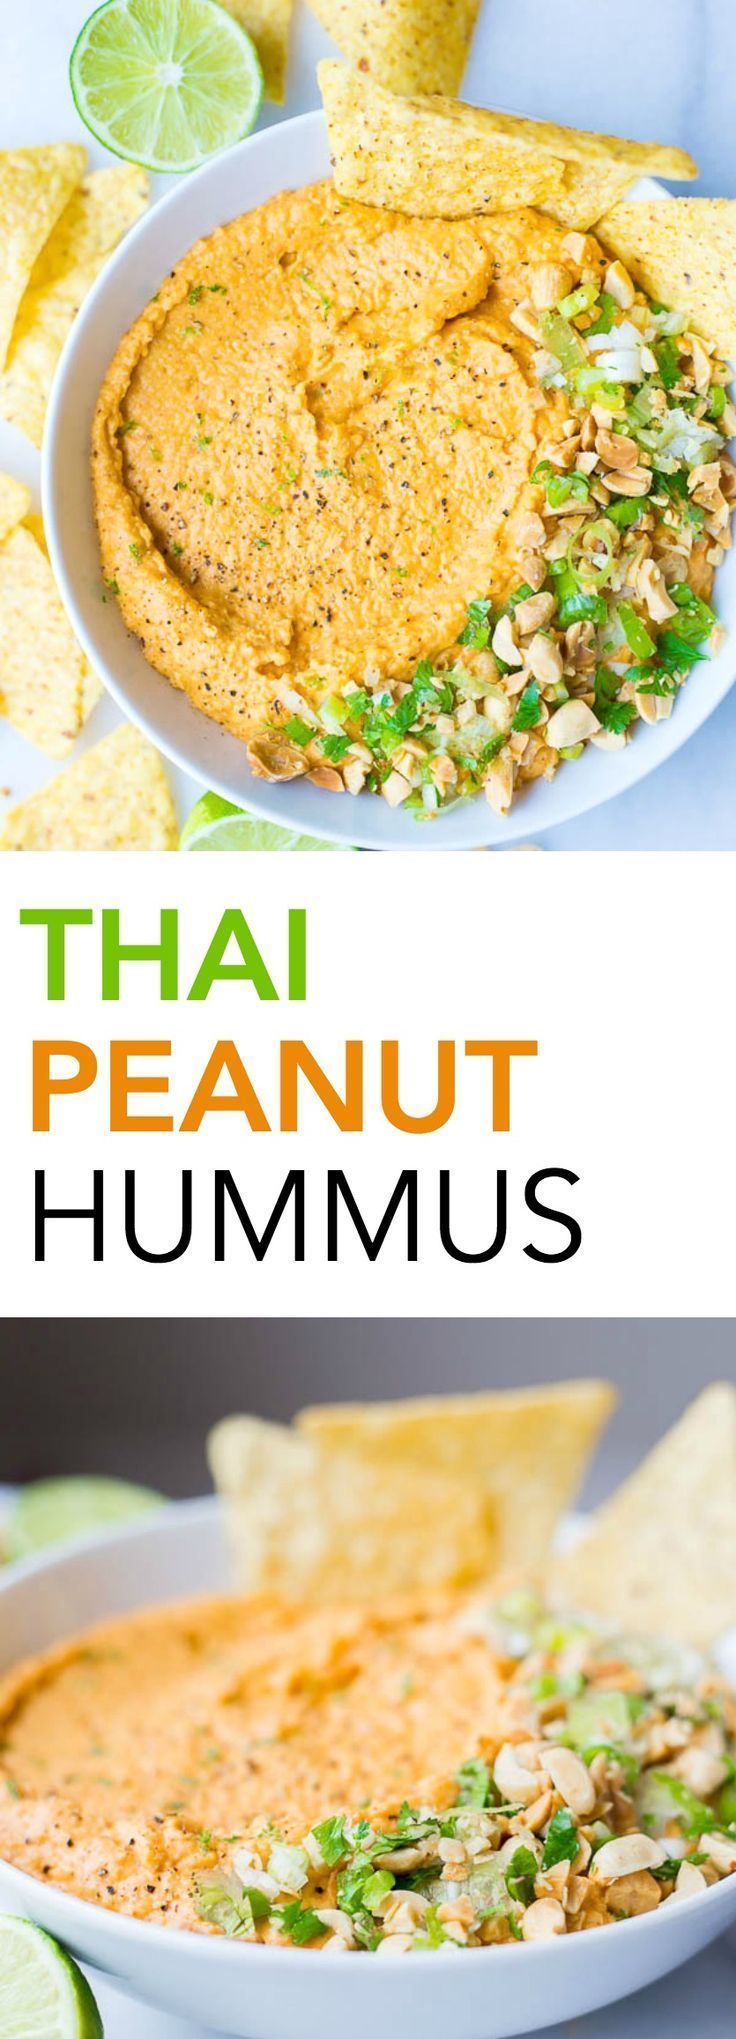 Thai Peanut Hummus: A simple homemade hummus recipe that's filled with Thai peanut sauce ingredients like Sriracha, garlic, and ginger! A healthy gluten free and vegan snack!| recipe